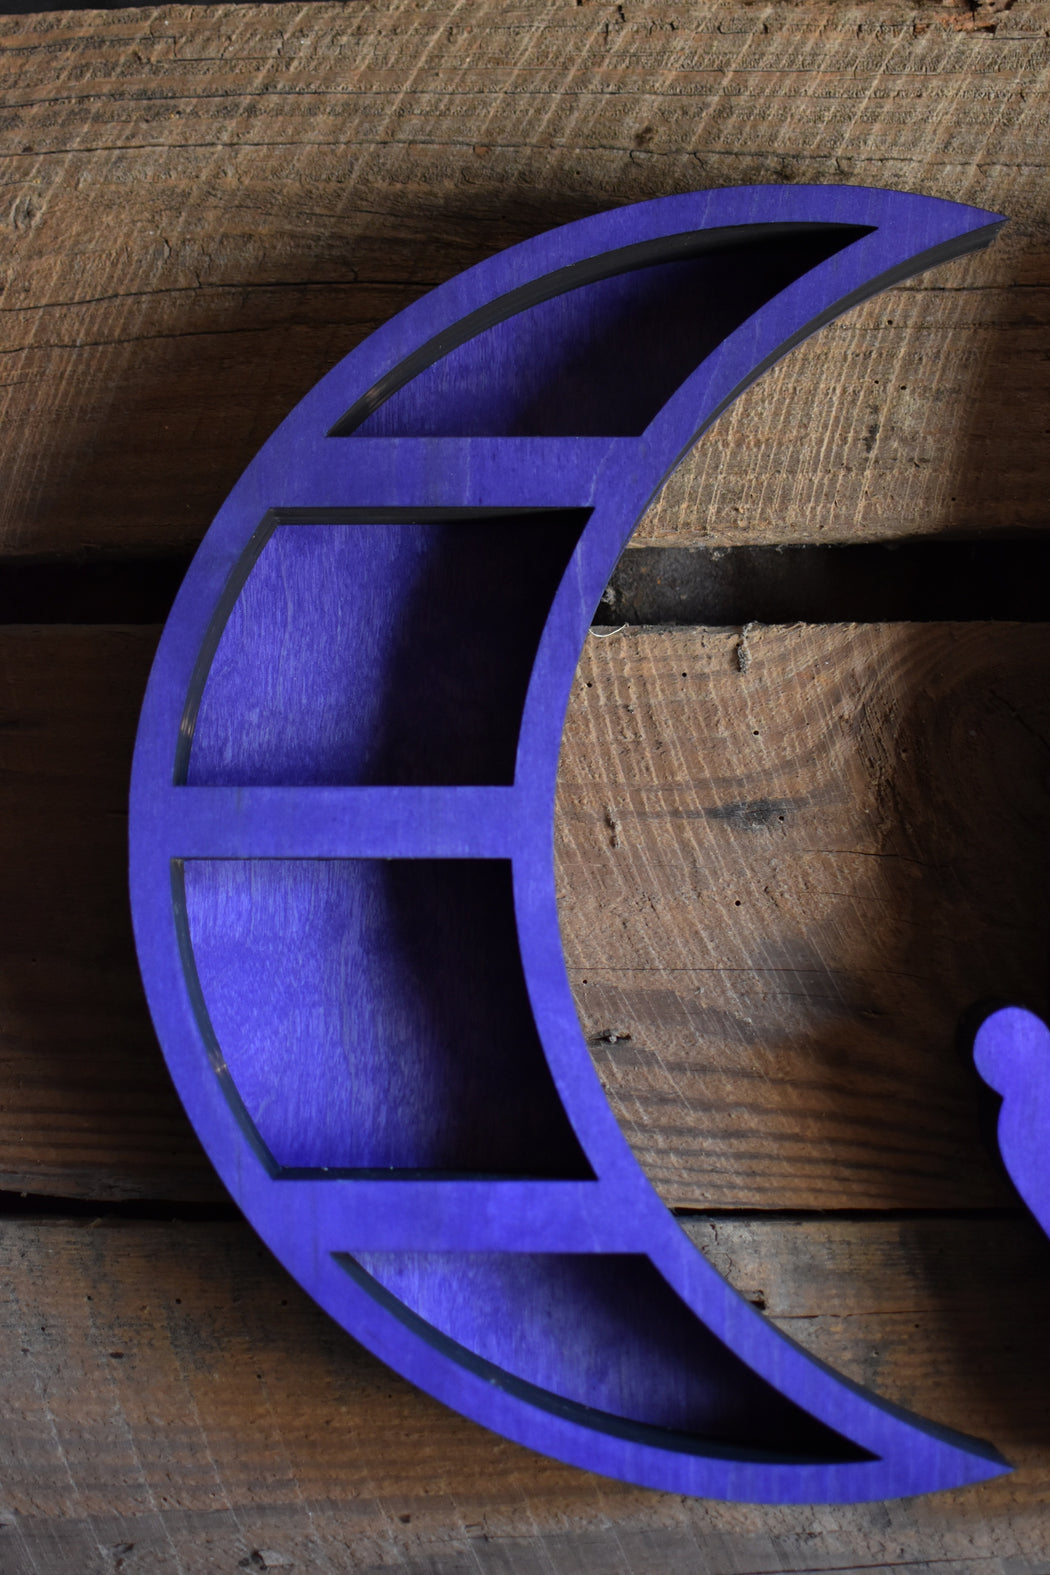 Purple Crescent Moon Shelf and Wood Carving